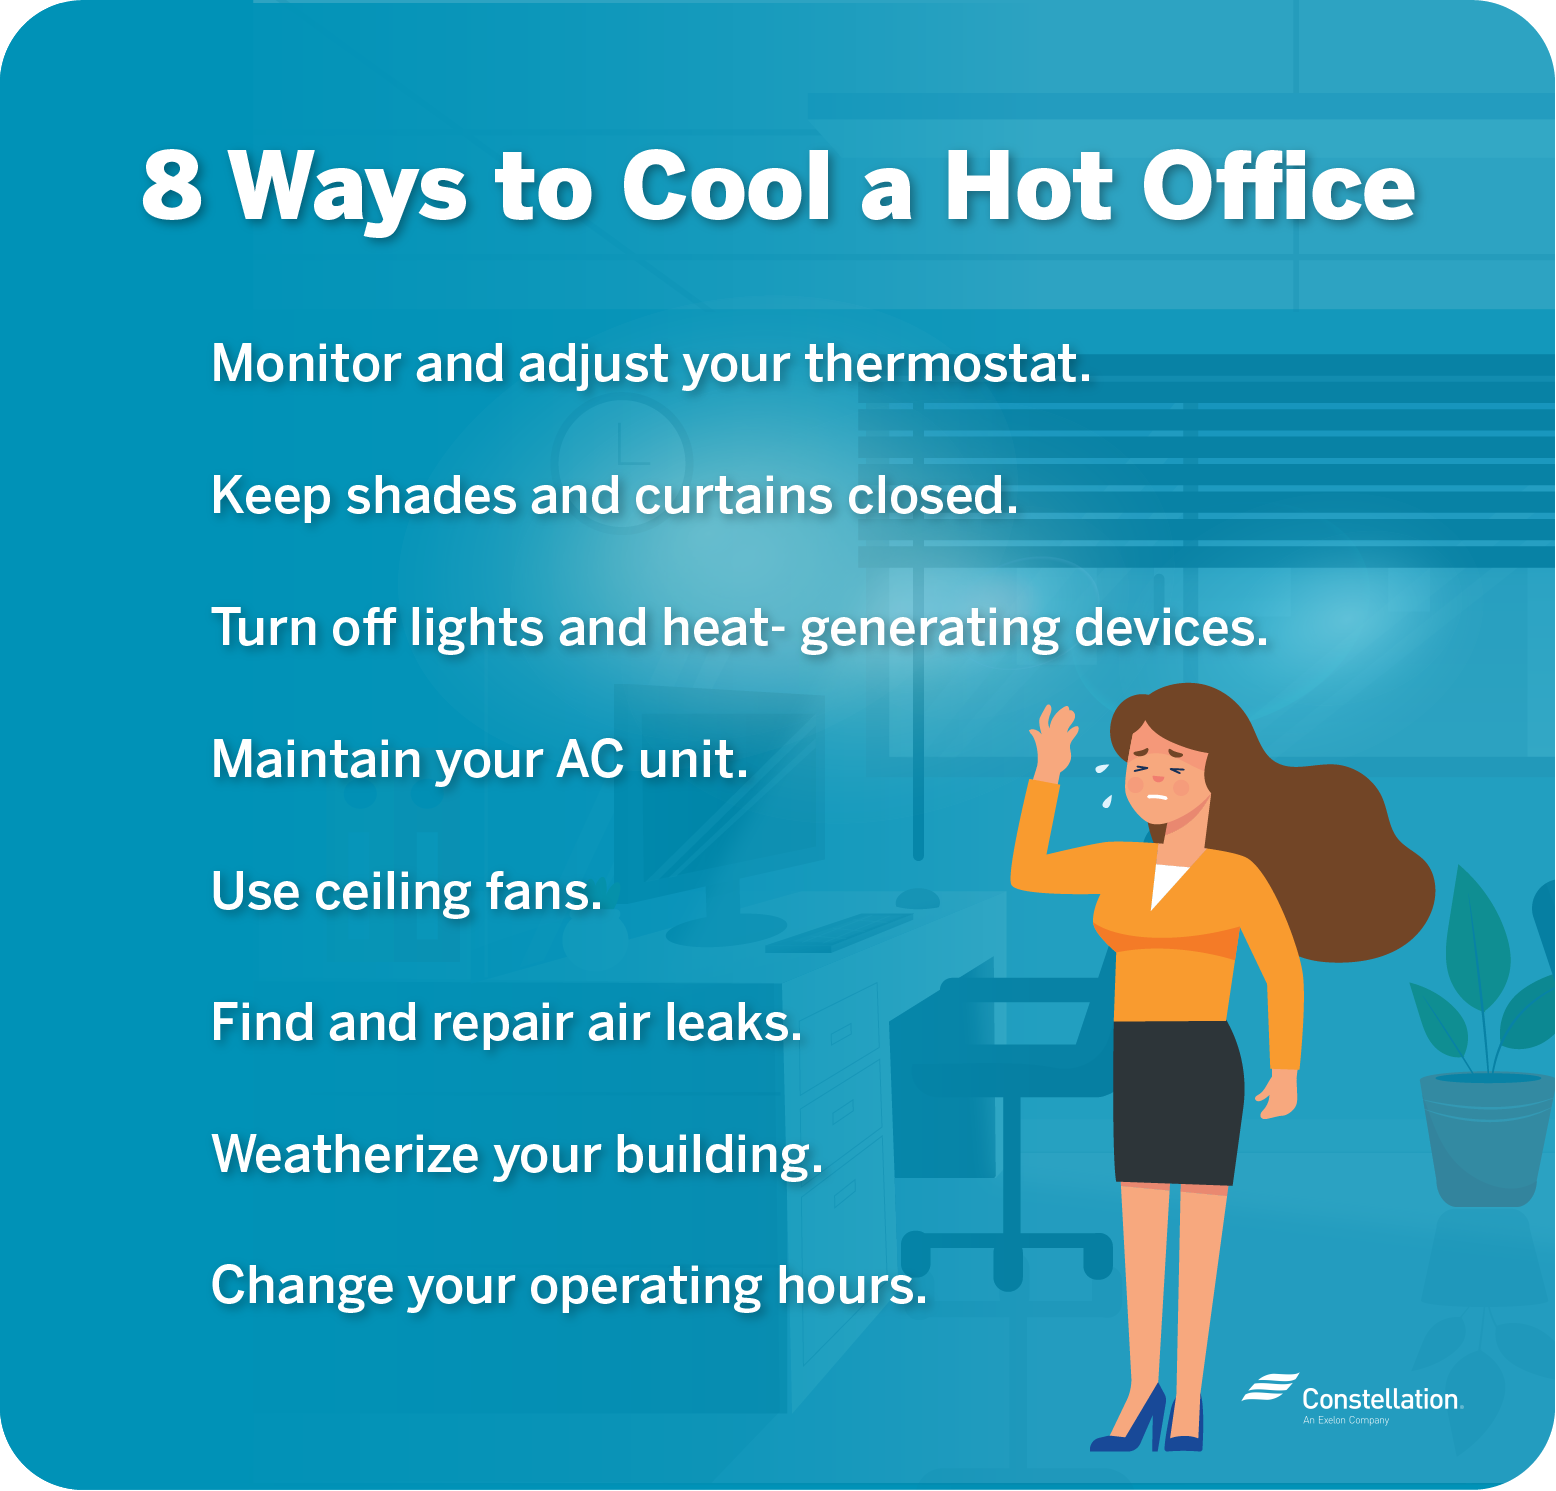 8 ways to cool a hot office